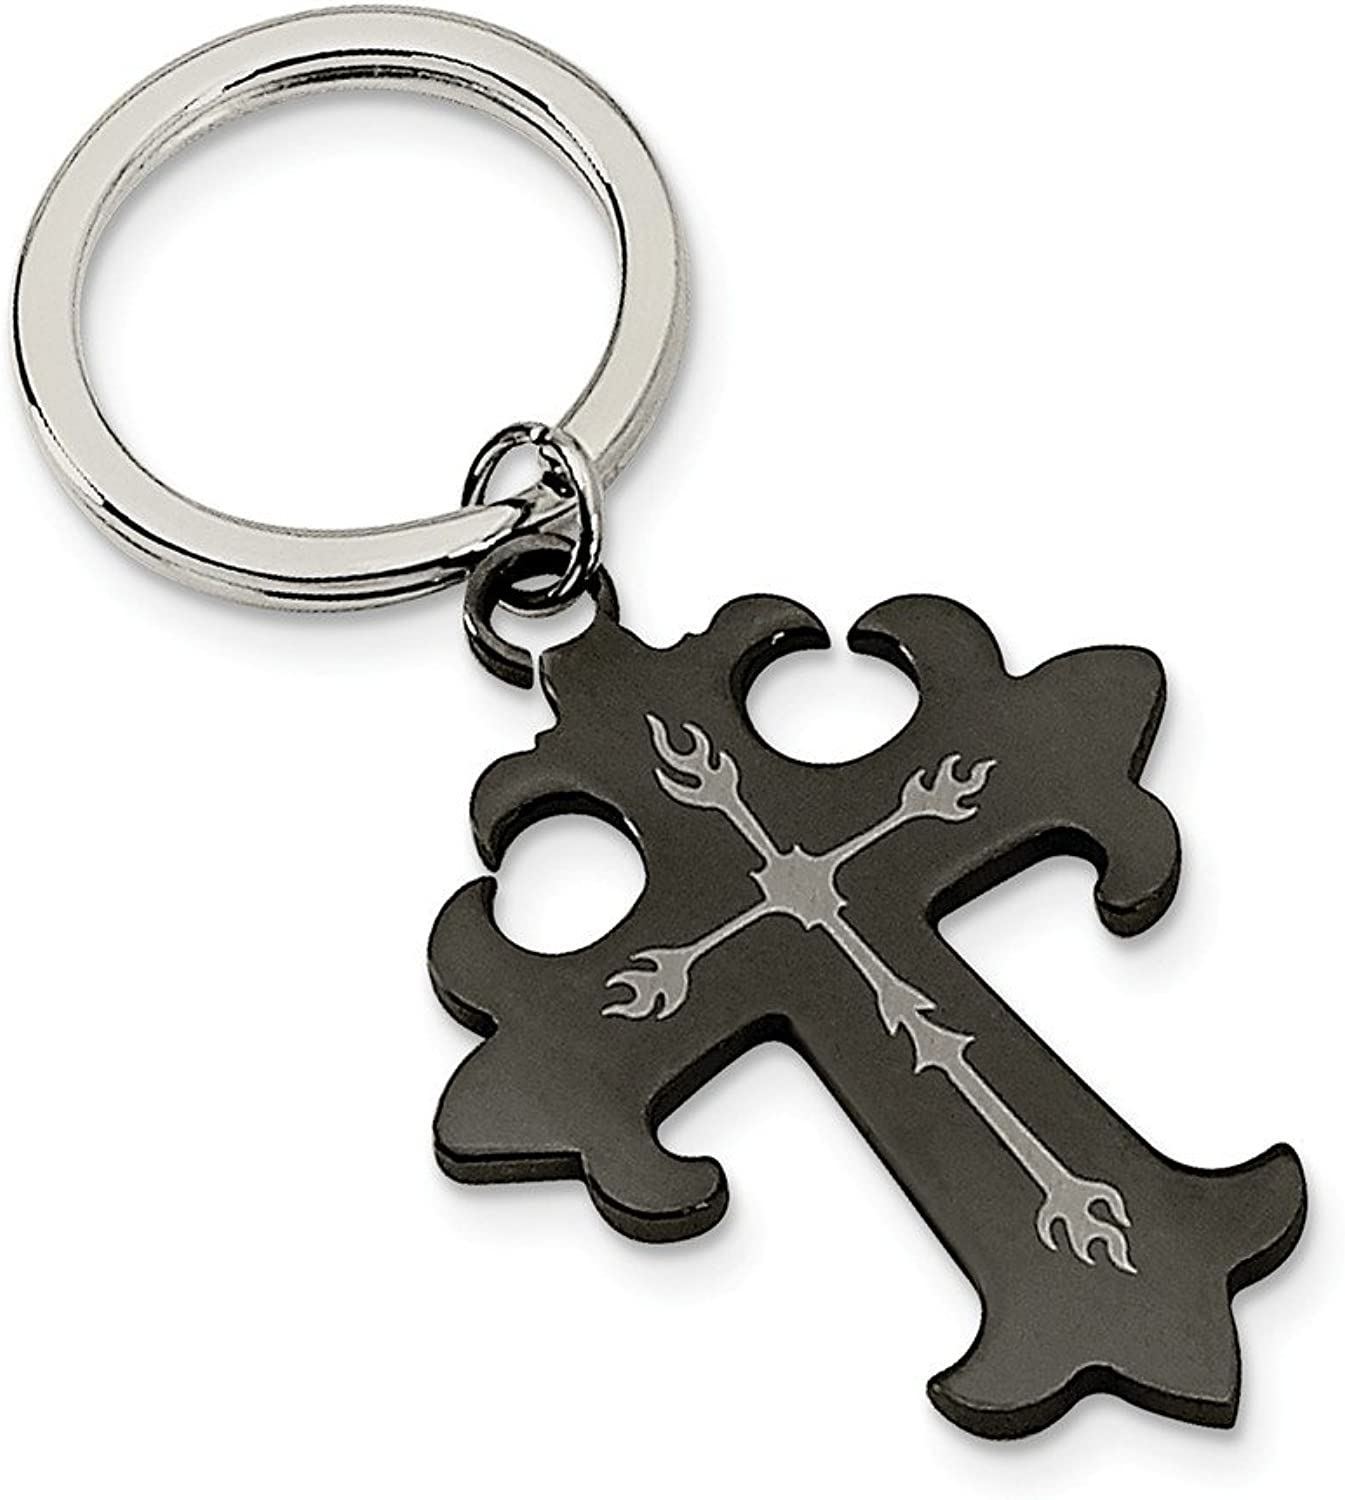 Beautiful Stainless Steel Polished Black IPPlated Cross Key Chain